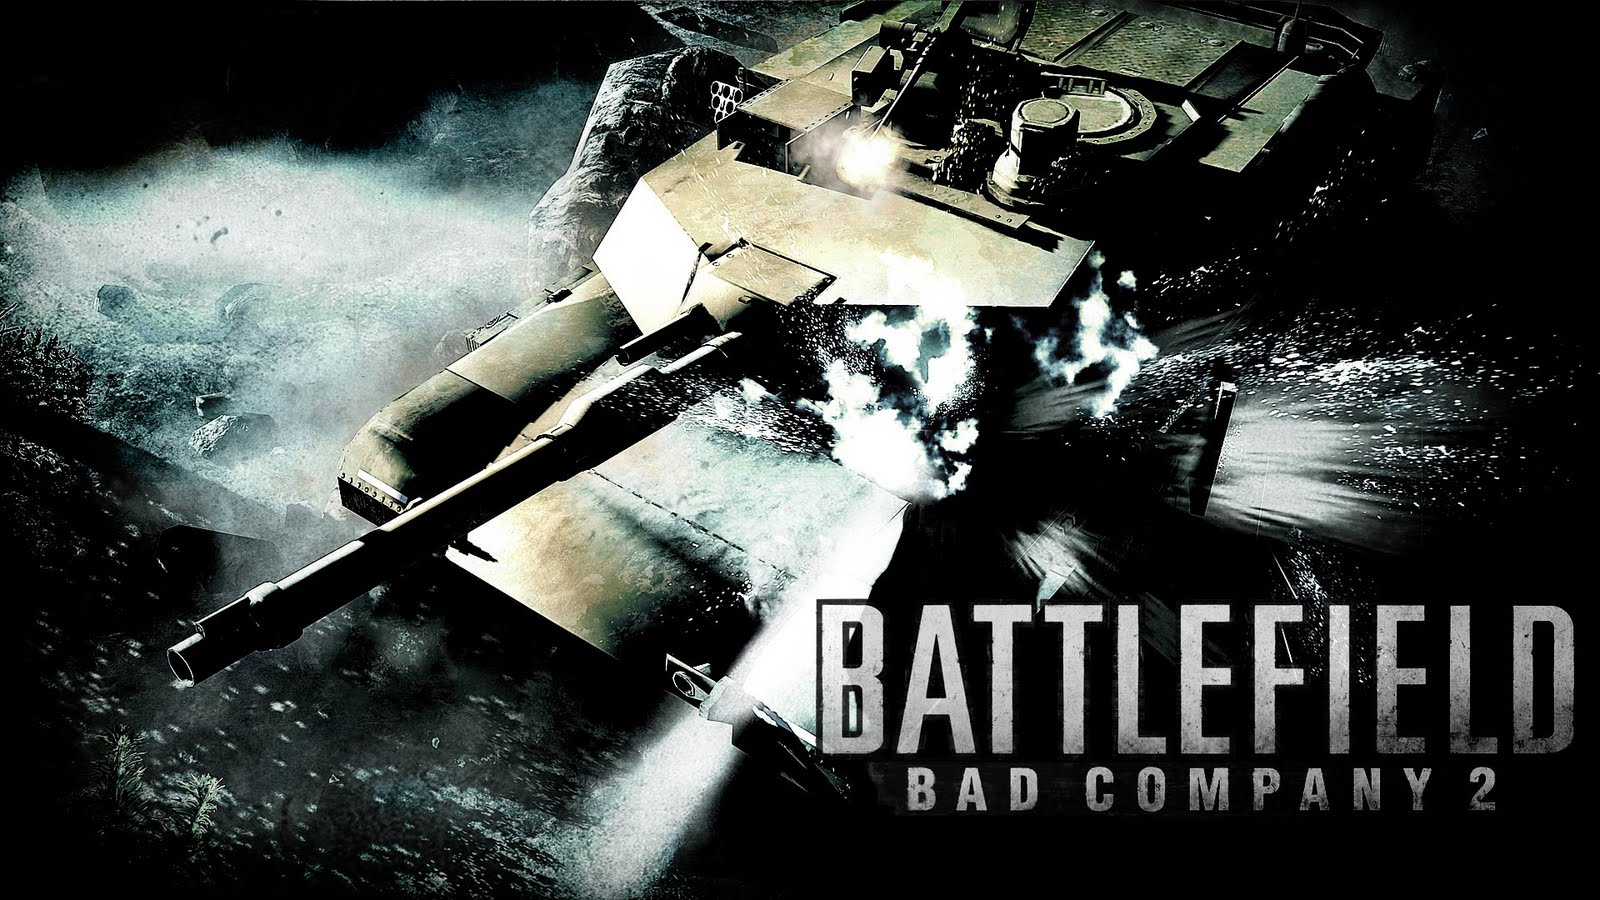 Battlefield bad company wallpaper - photo#9